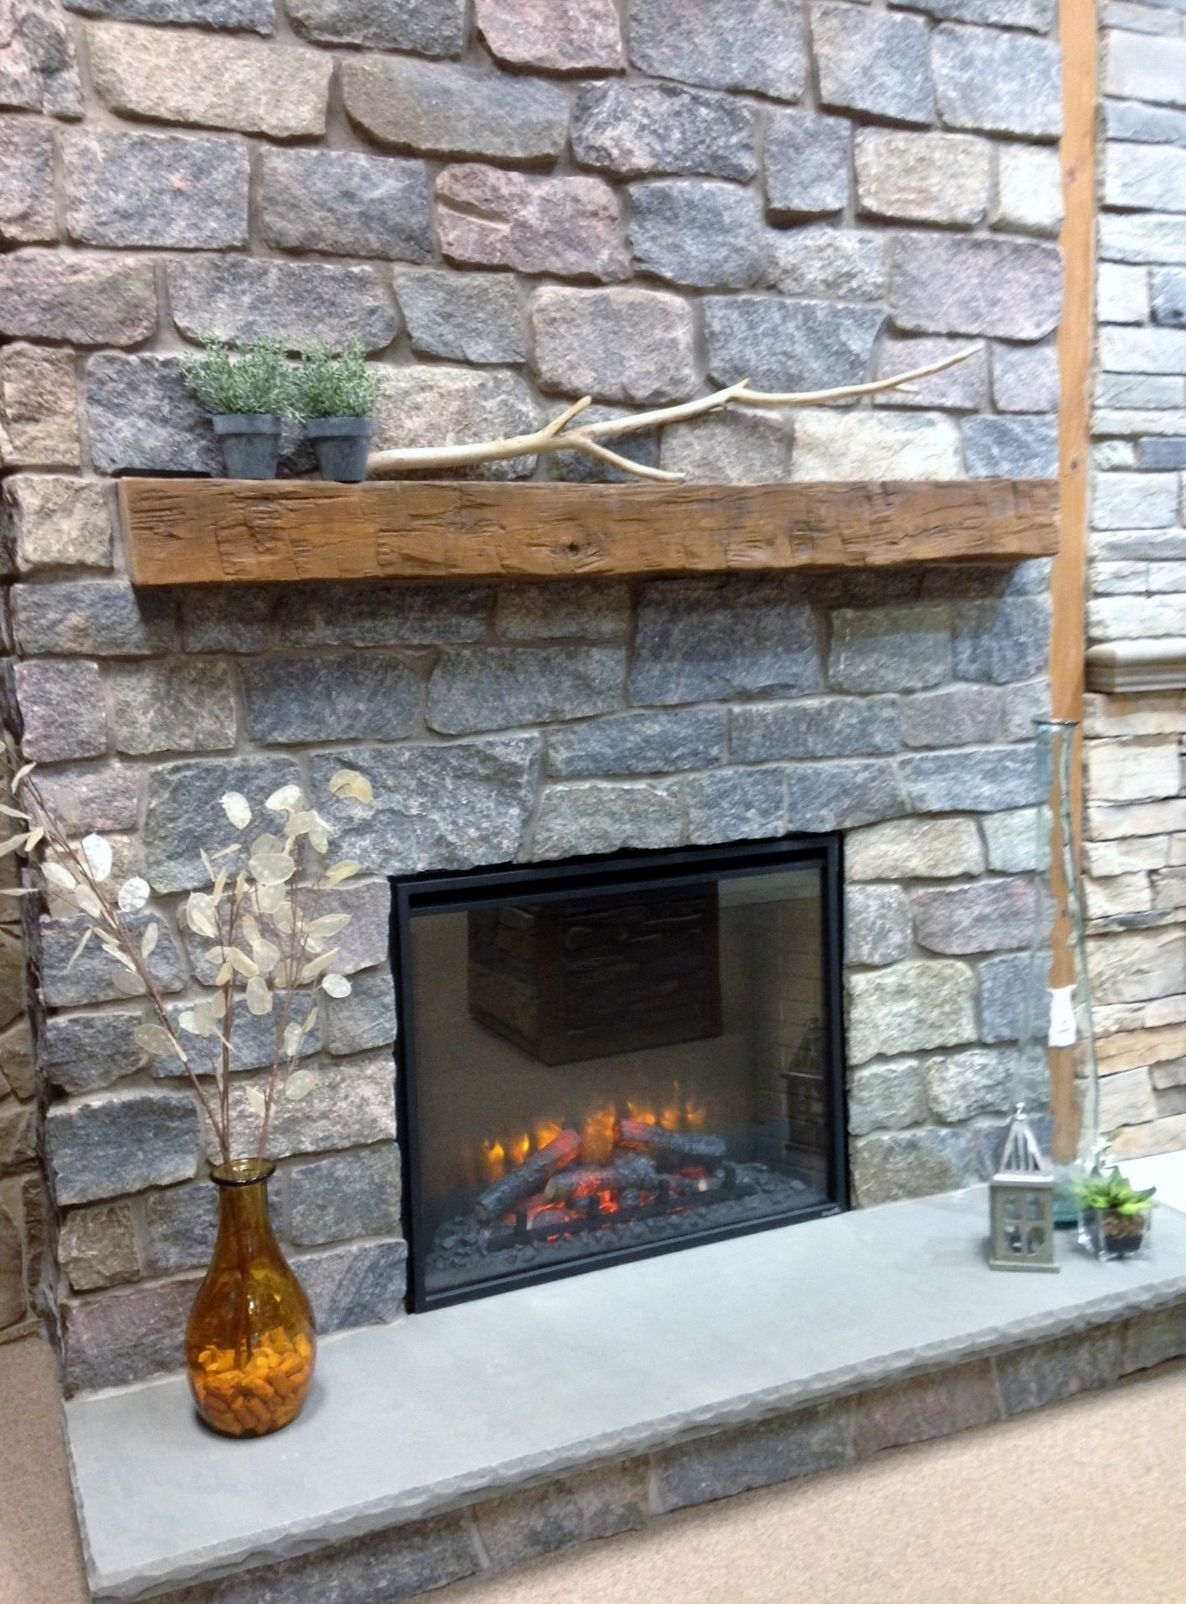 Quarry Cut Natural Stone Fireplace Surround Barn Beam Mantel